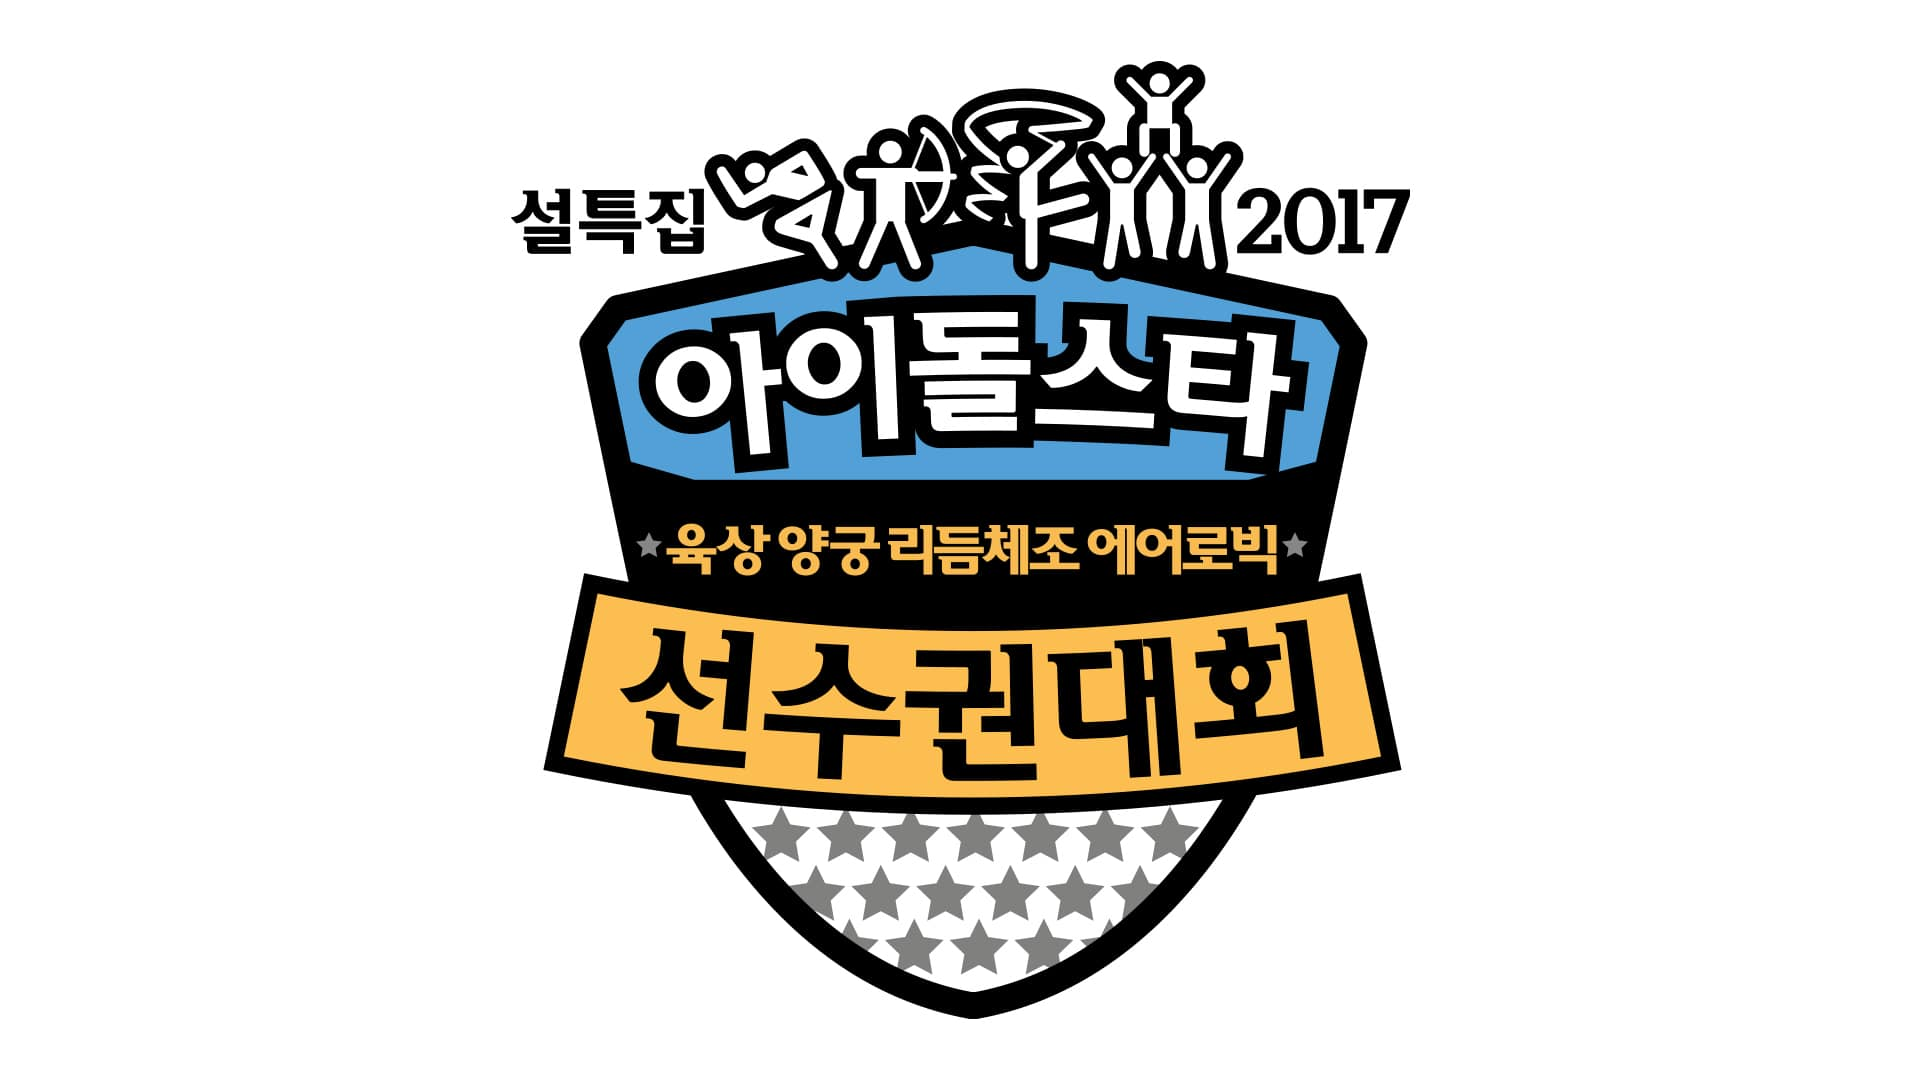 """Filming For """"2017 Idol Star Athletics Championships"""" Temporarily Suspended Due To MBC Strike"""